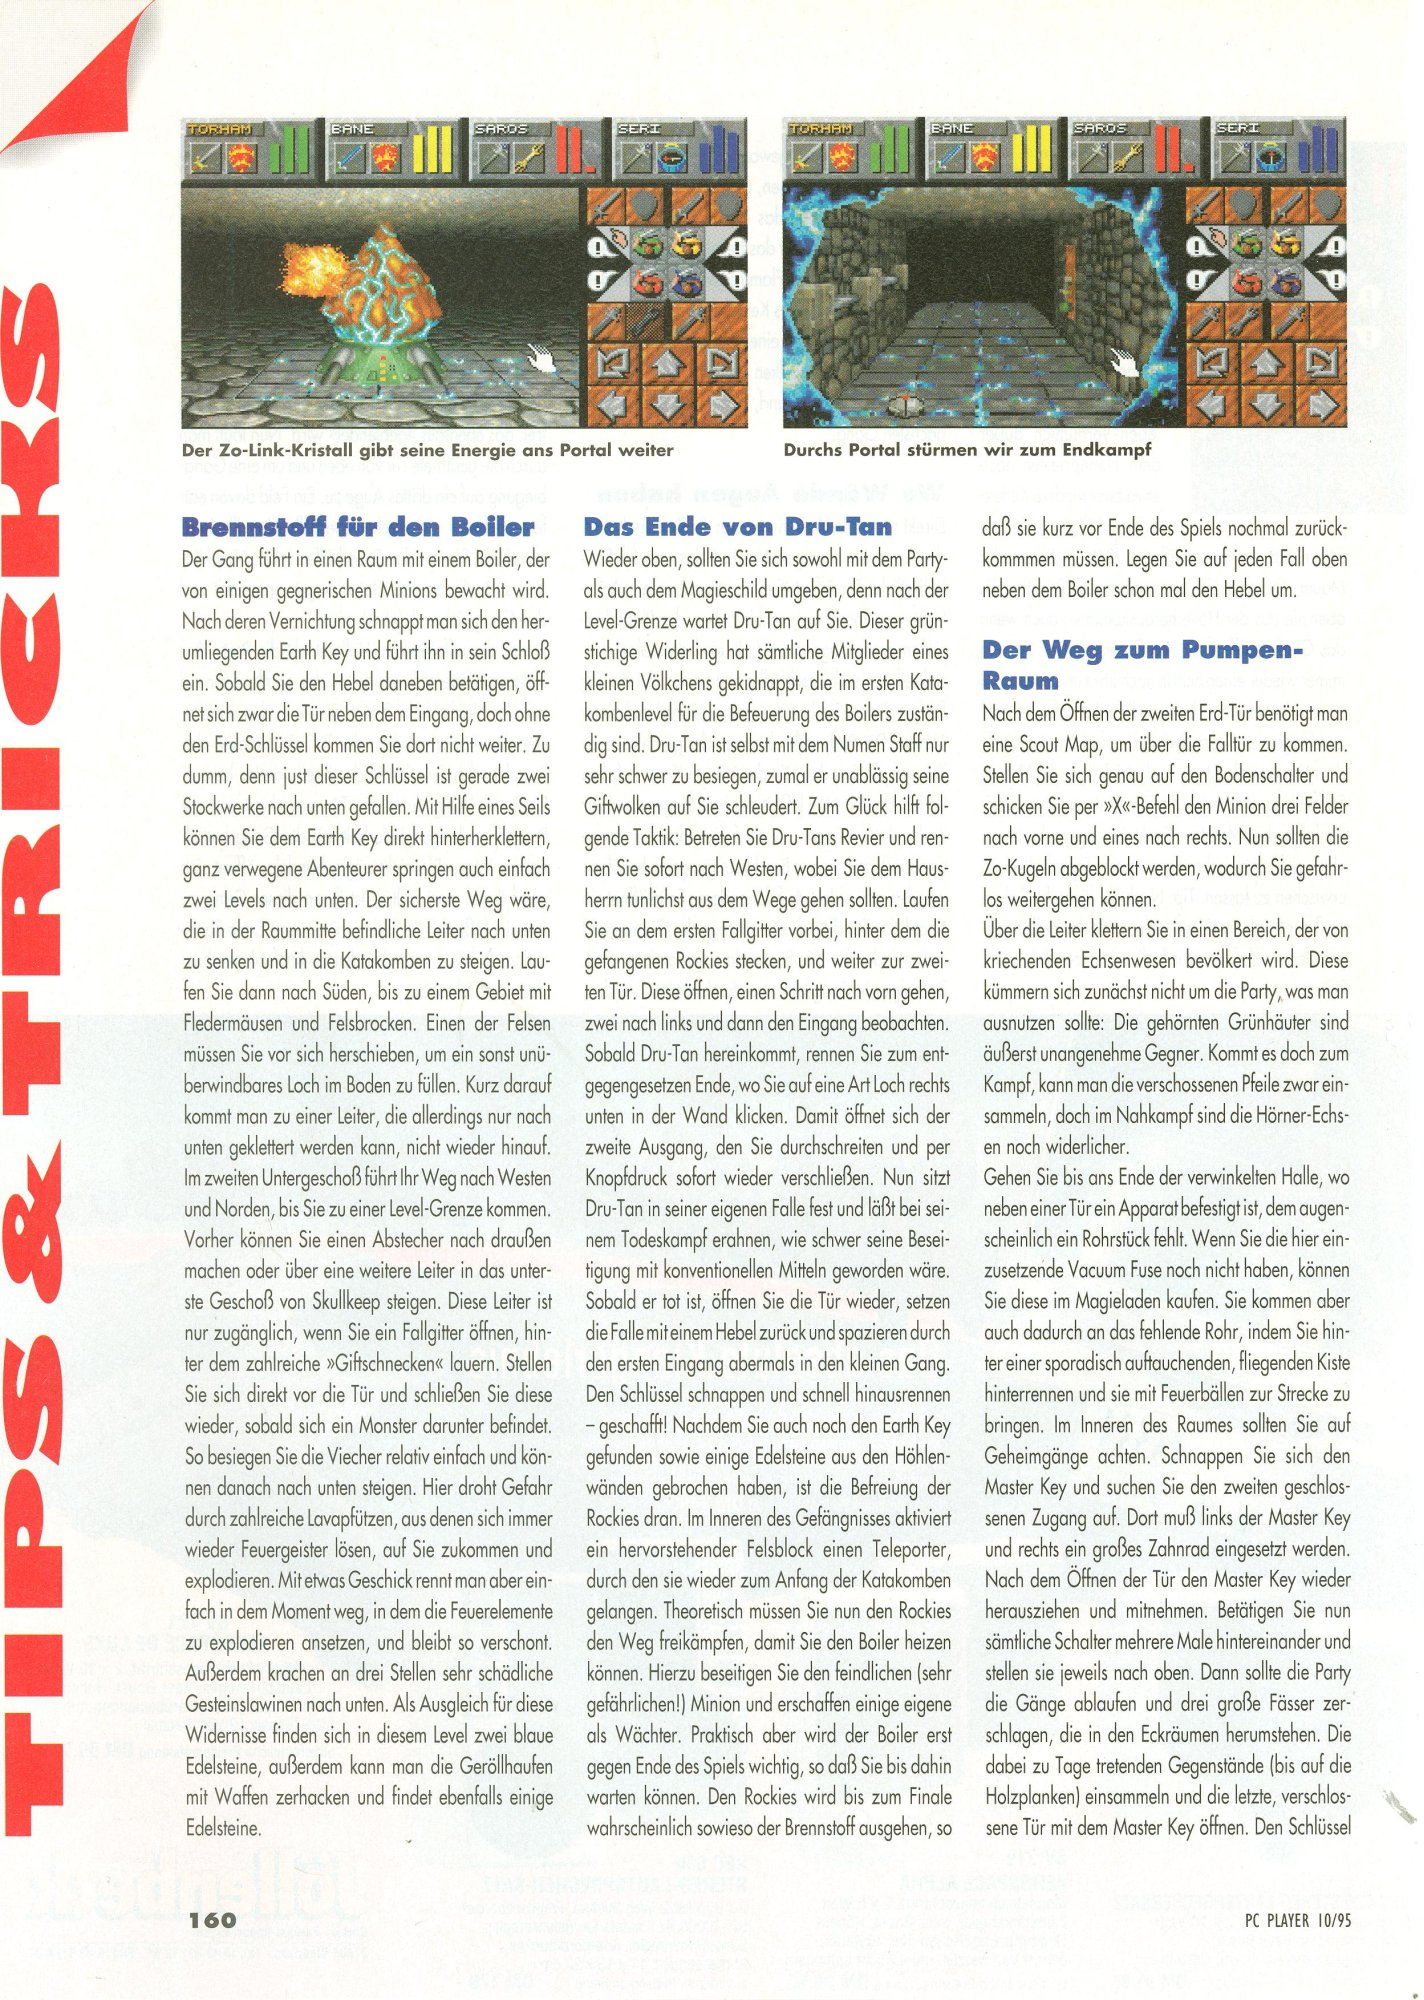 Dungeon Master II for PC Guide published in German magazine 'PC Player', October 1995, Page 160